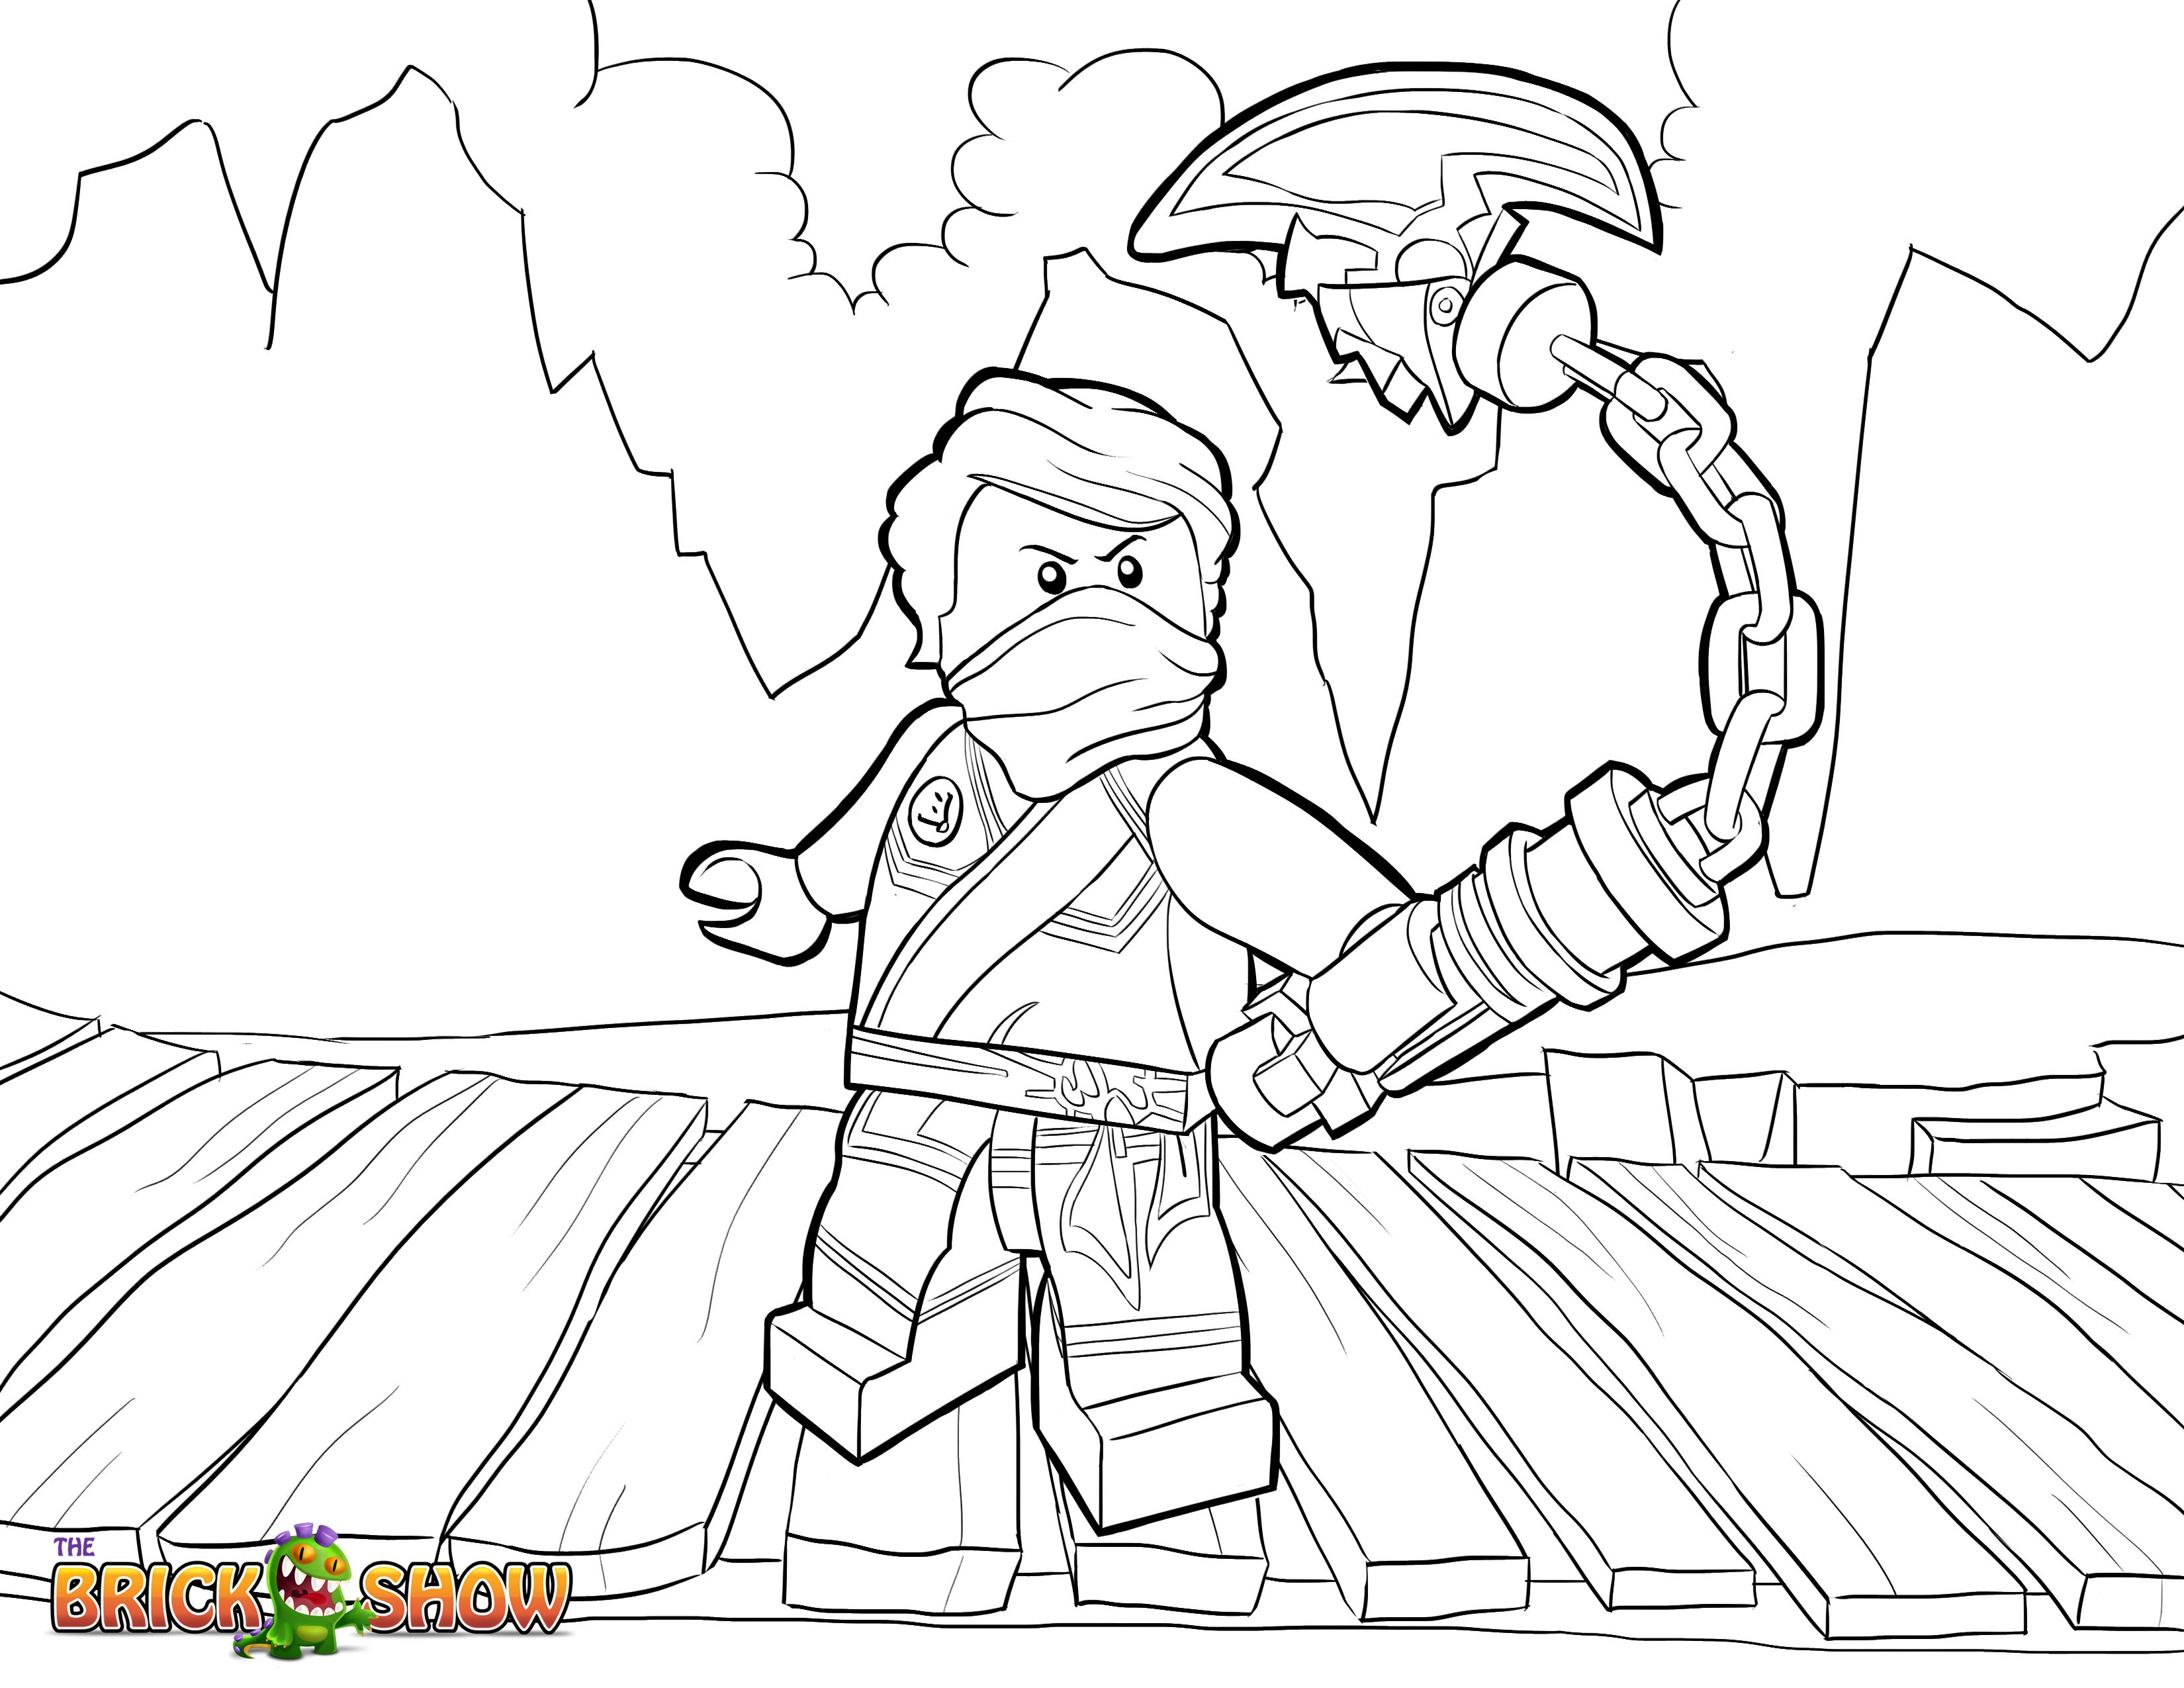 Coloring pages ninjago - Lego Ninjago Coloring Page Lego Lego Ninjago Lloyd Tournament Of Elements Printable Color Sheet